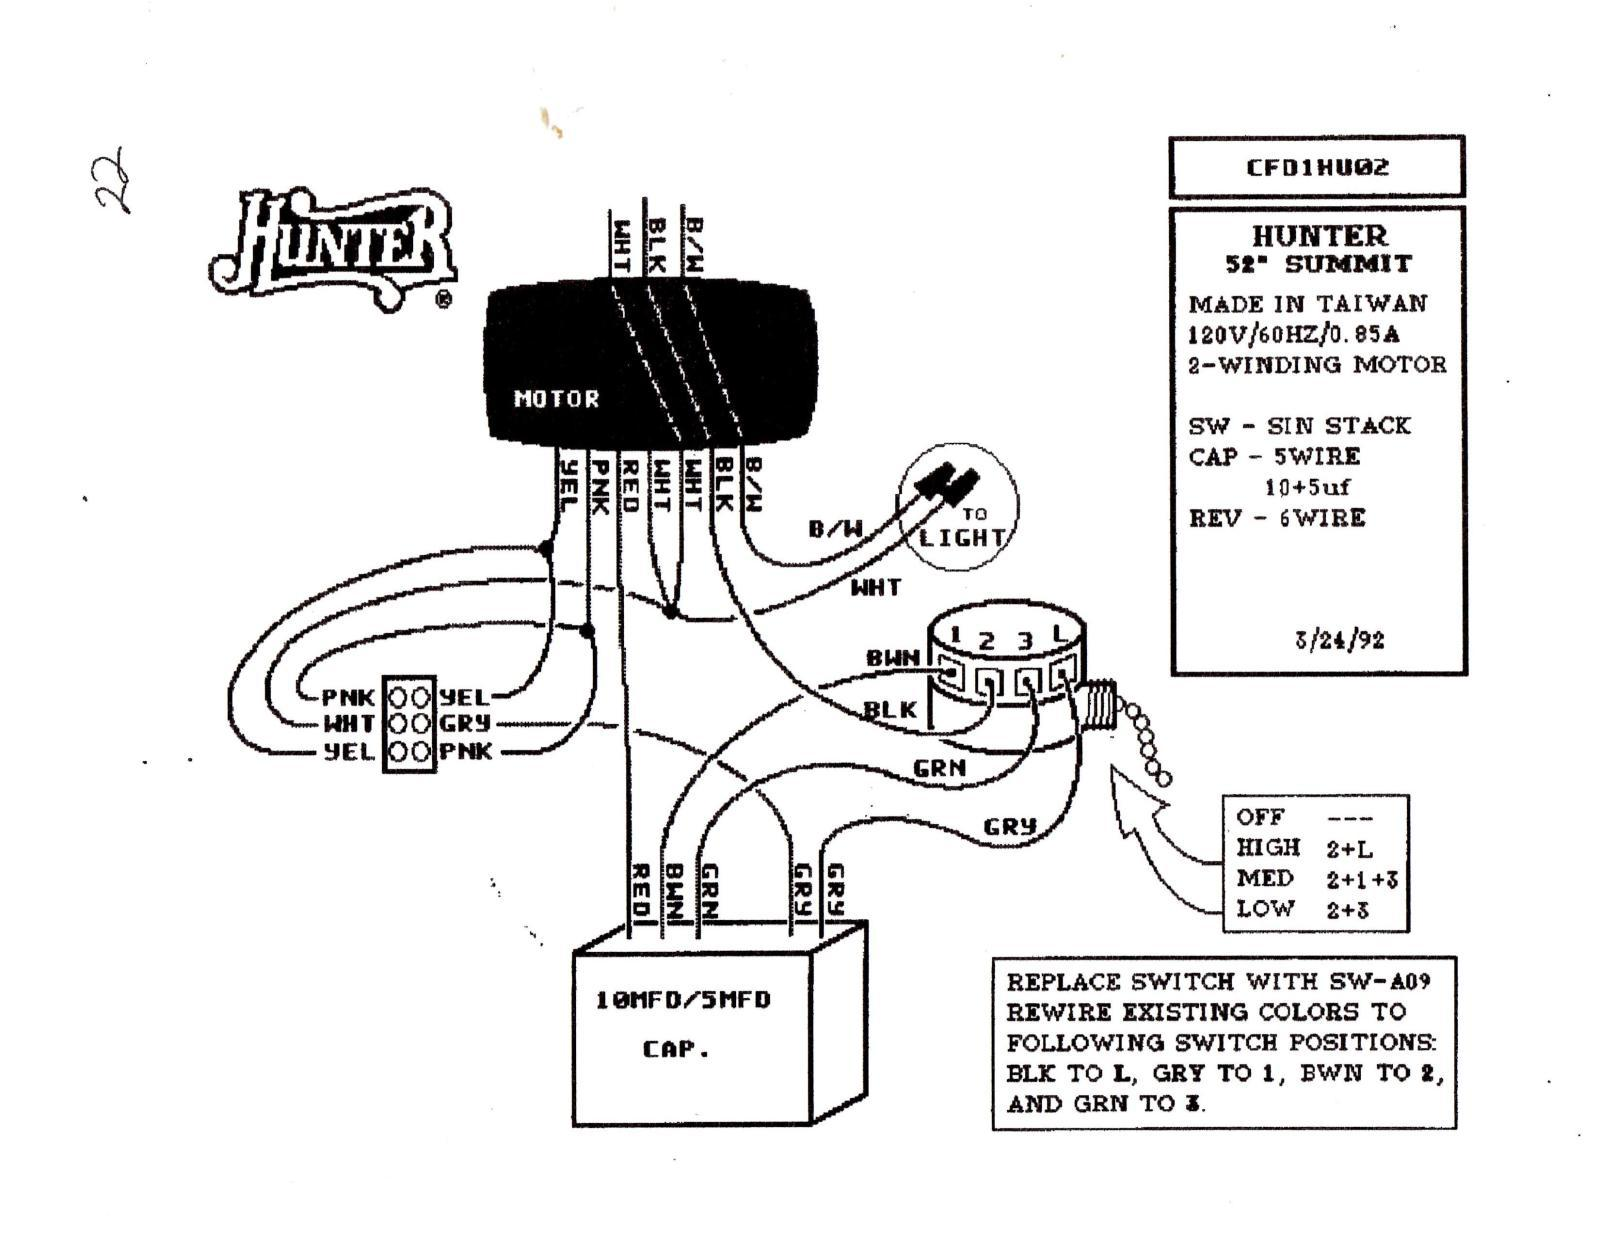 Simple Touch Light Switch Circuit as well Ze 03se Wiring Instructions likewise Electrical Wiring Diagram For The 1956 Chevrolet Trucks Series 3000 4000 And 6000 moreover 84 C1500 Fuse Box additionally Potentiometer Wiring Diagram Vfd. on click dimmer switch wiring diagram